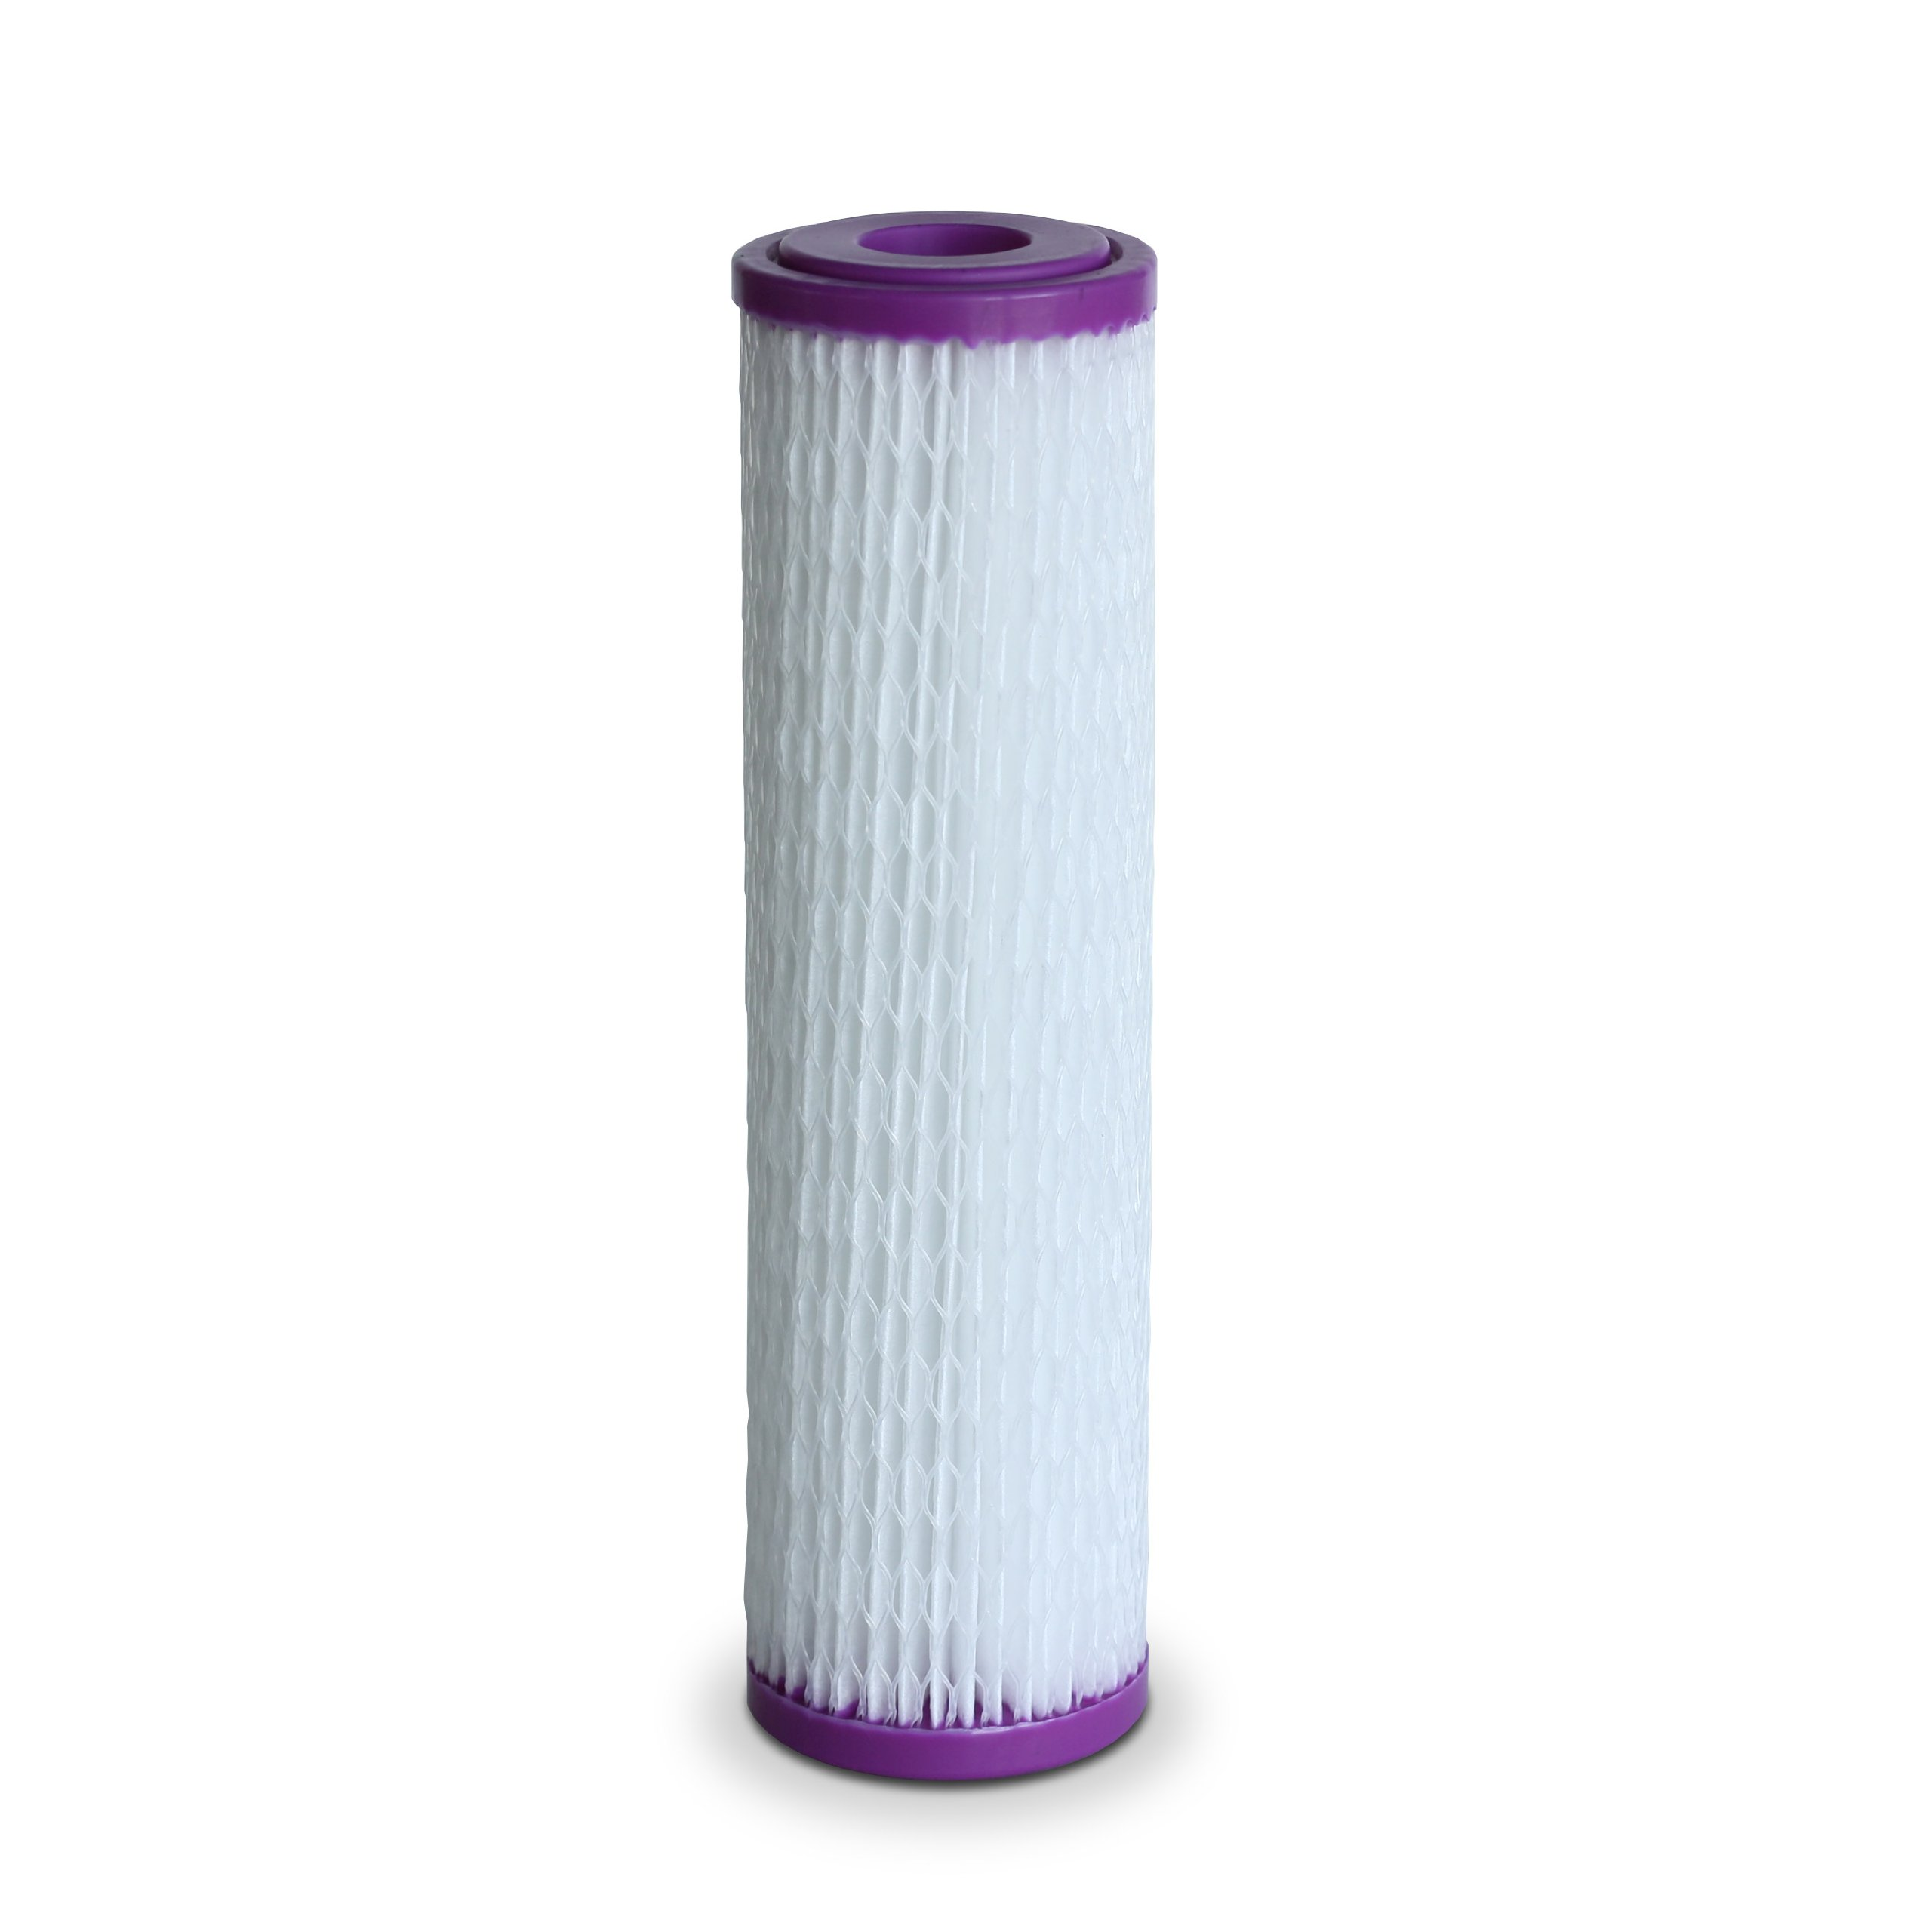 Aquasana Replacement 0.35 Sub-micron Post-Filter for Whole House Water Filter Systems